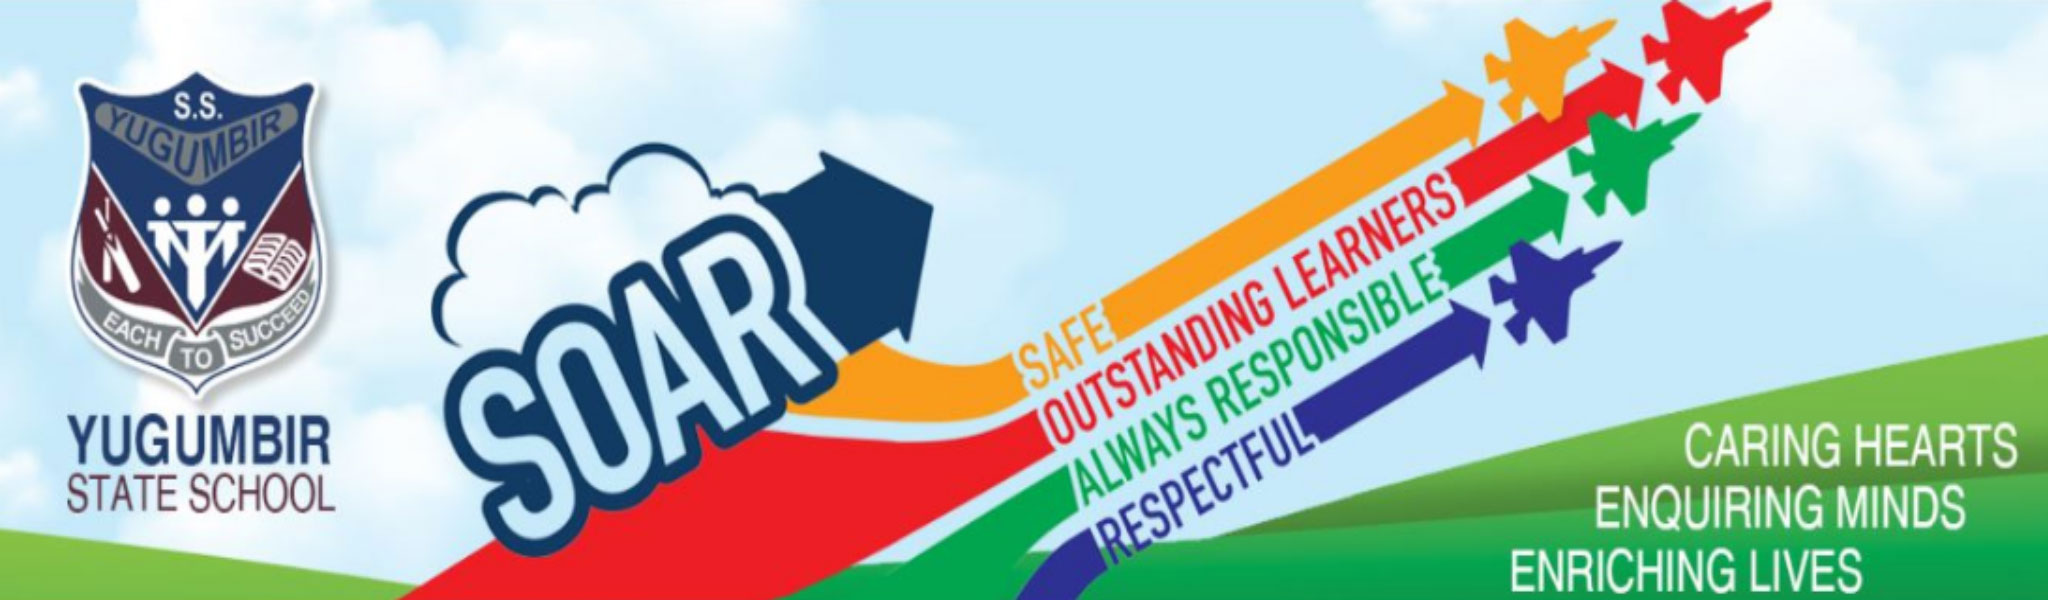 School banner with text that says, Safe, Outstanding learners, Always responsible, Respectful, Caring hearts, Enquiring minds, Enriching lives